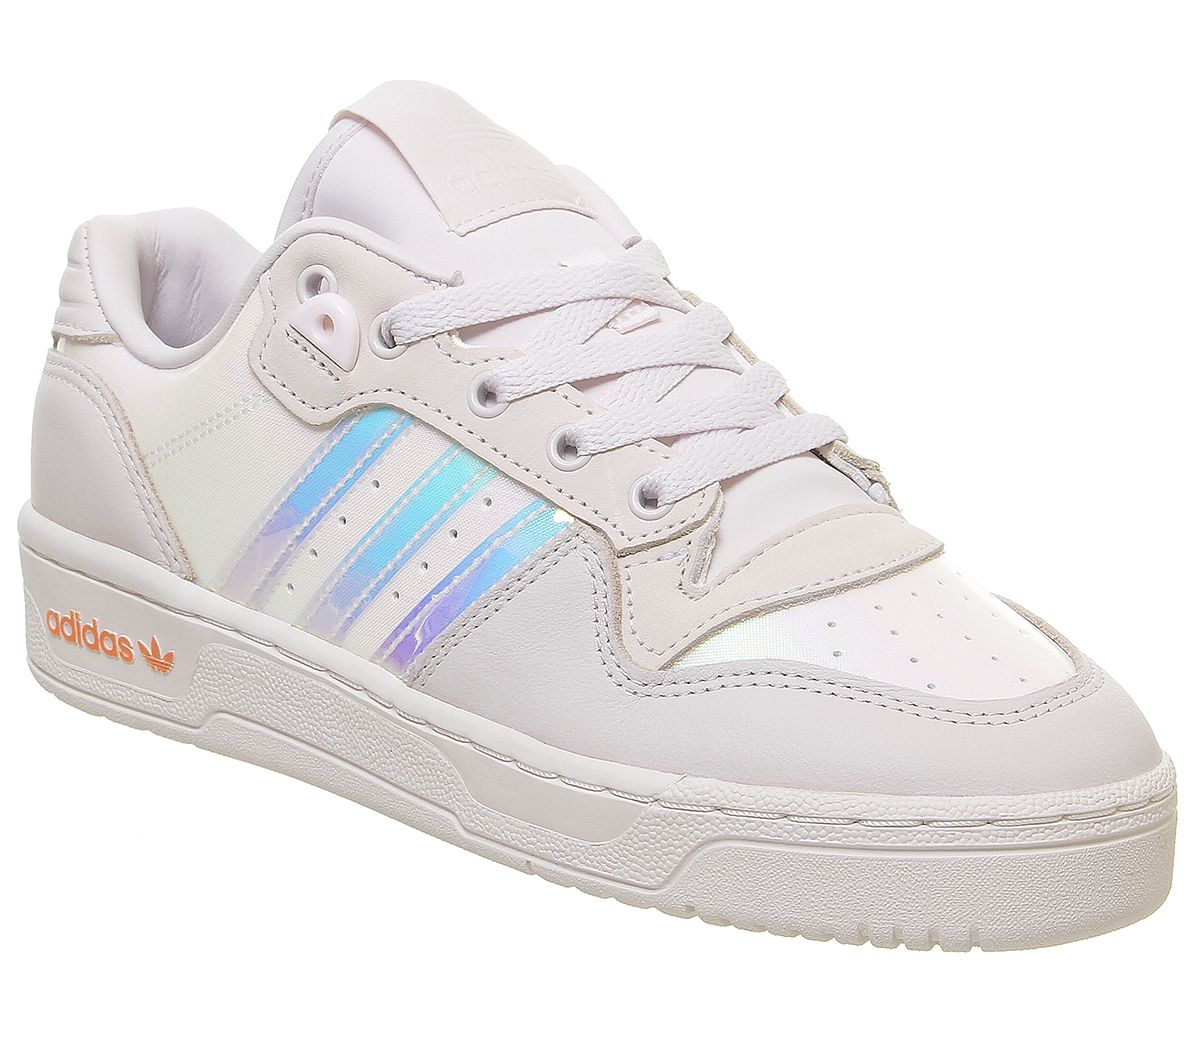 Details zu Womens Adidas Rivalry Low Trainers Orchid Tint Orange Energy Ink Trainers Shoes